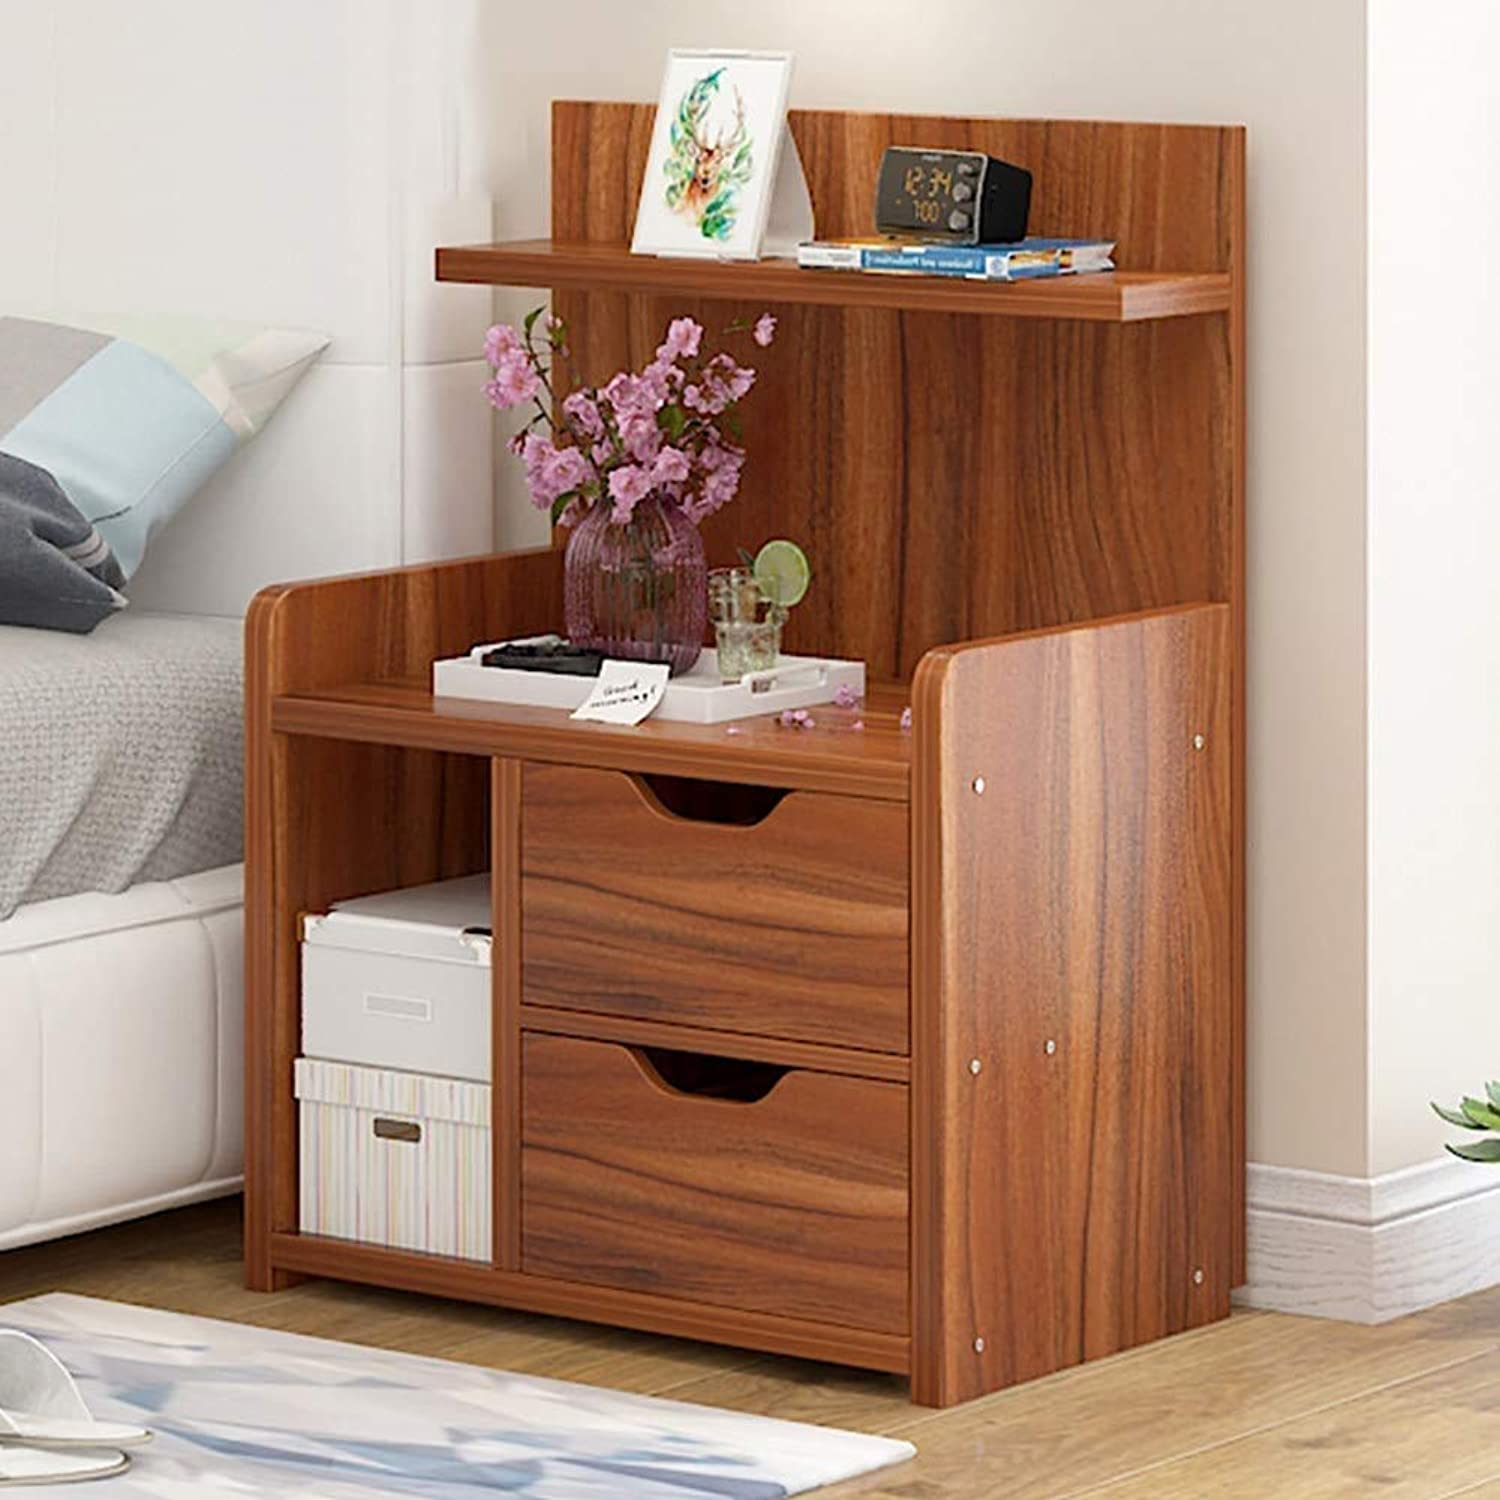 XAJGW Nightstand with 2 Drawers, Unique Modern Design Bedroom Side Table Bedside End Table, Easy to Assemble, Small and Cute (color   Style C)